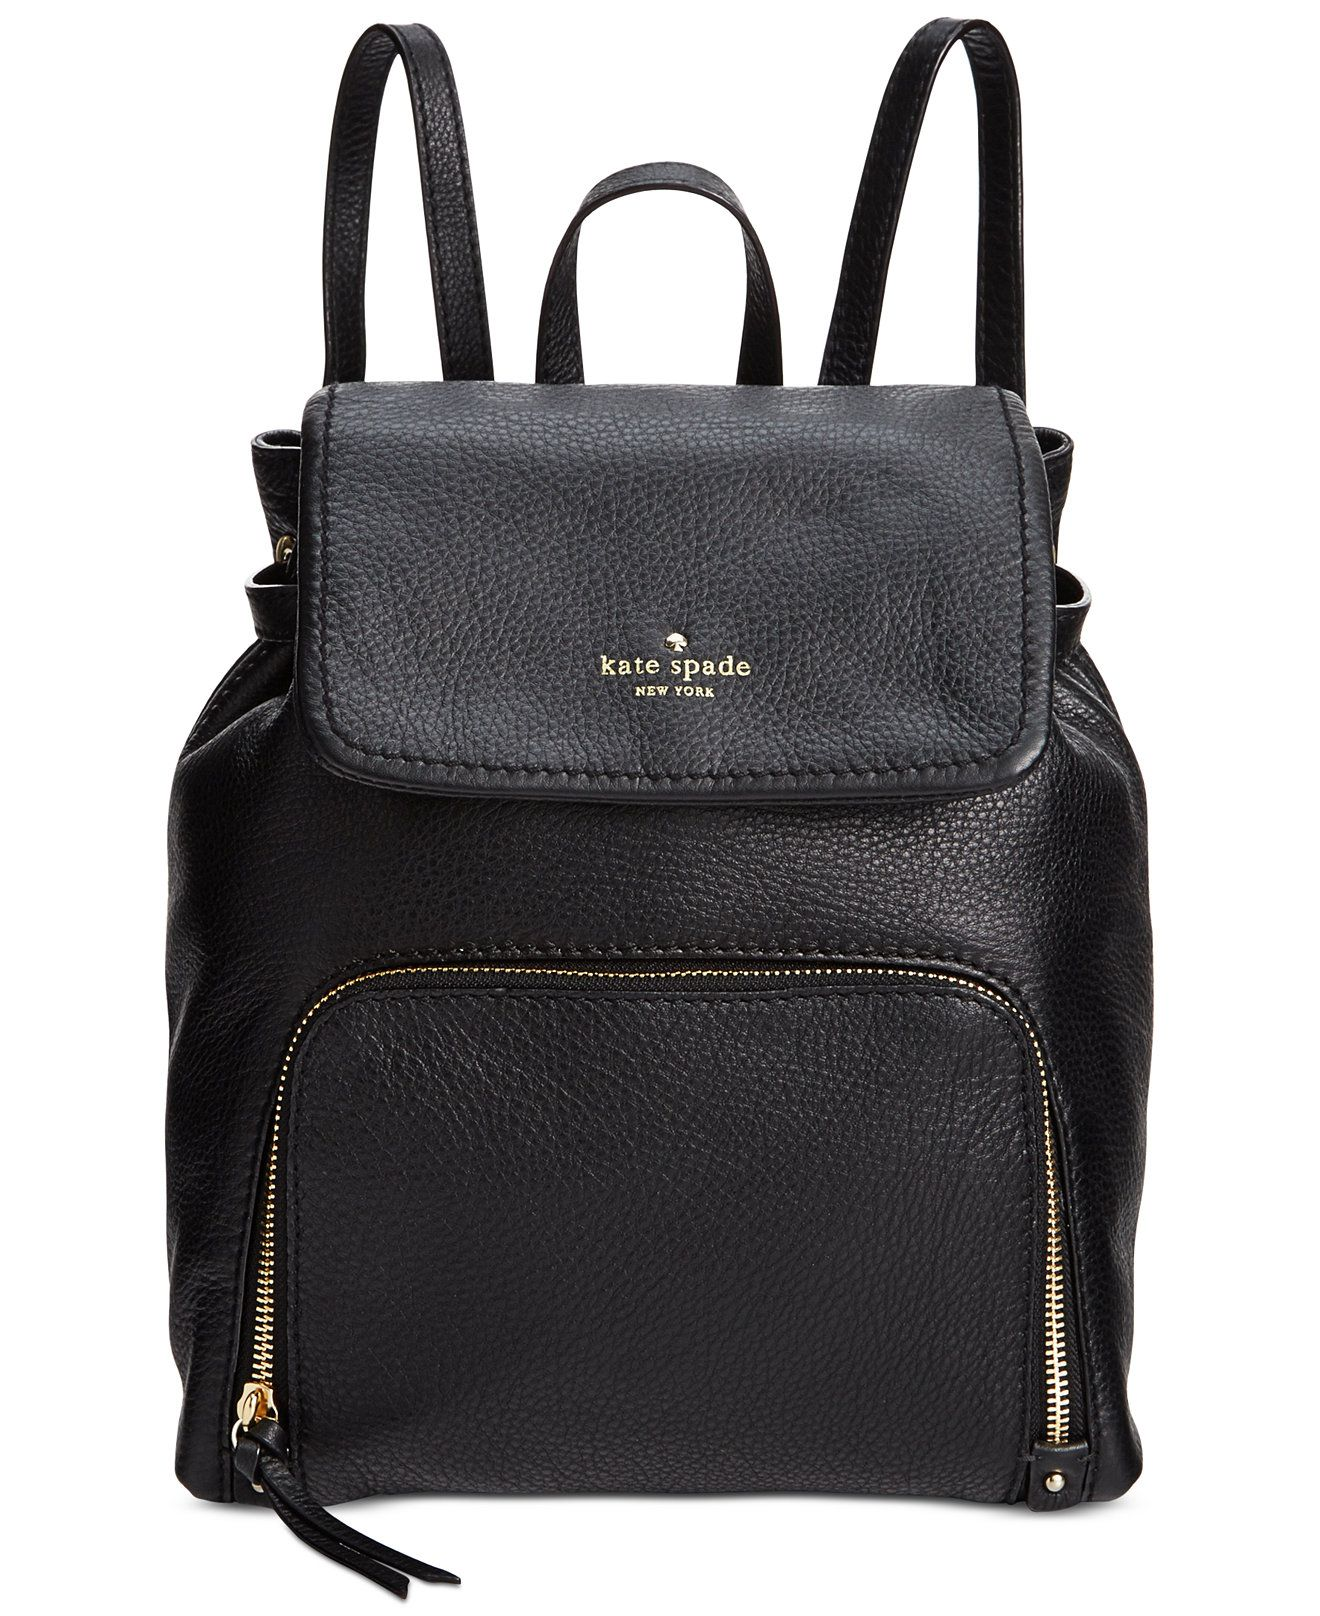 f851eac246e36 kate spade new york Cobble Hill Charley Backpack - Backpacks - Handbags    Accessories - Macy s